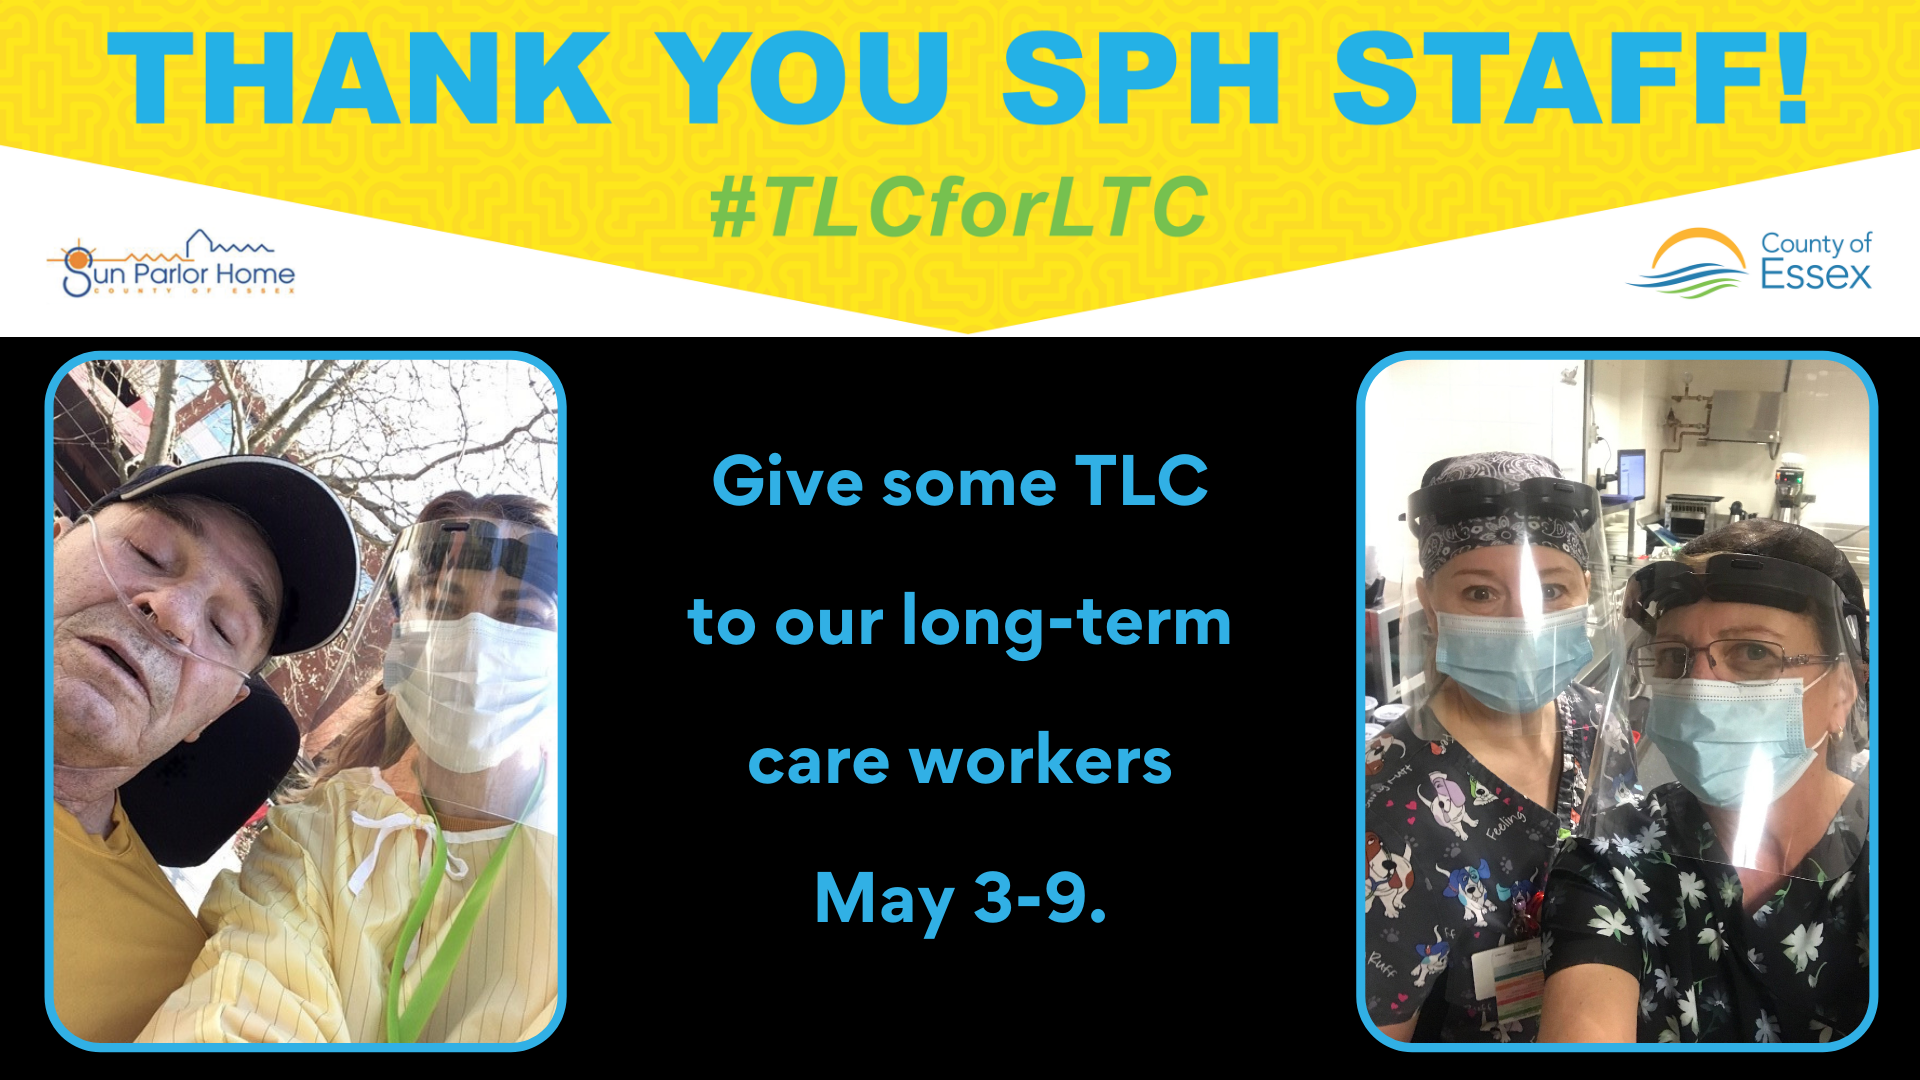 Thank you SPH Staff! #TLCfor LTC. Give some TLC to our long-term care workers May 3-9. Photos of workers wearing masks.